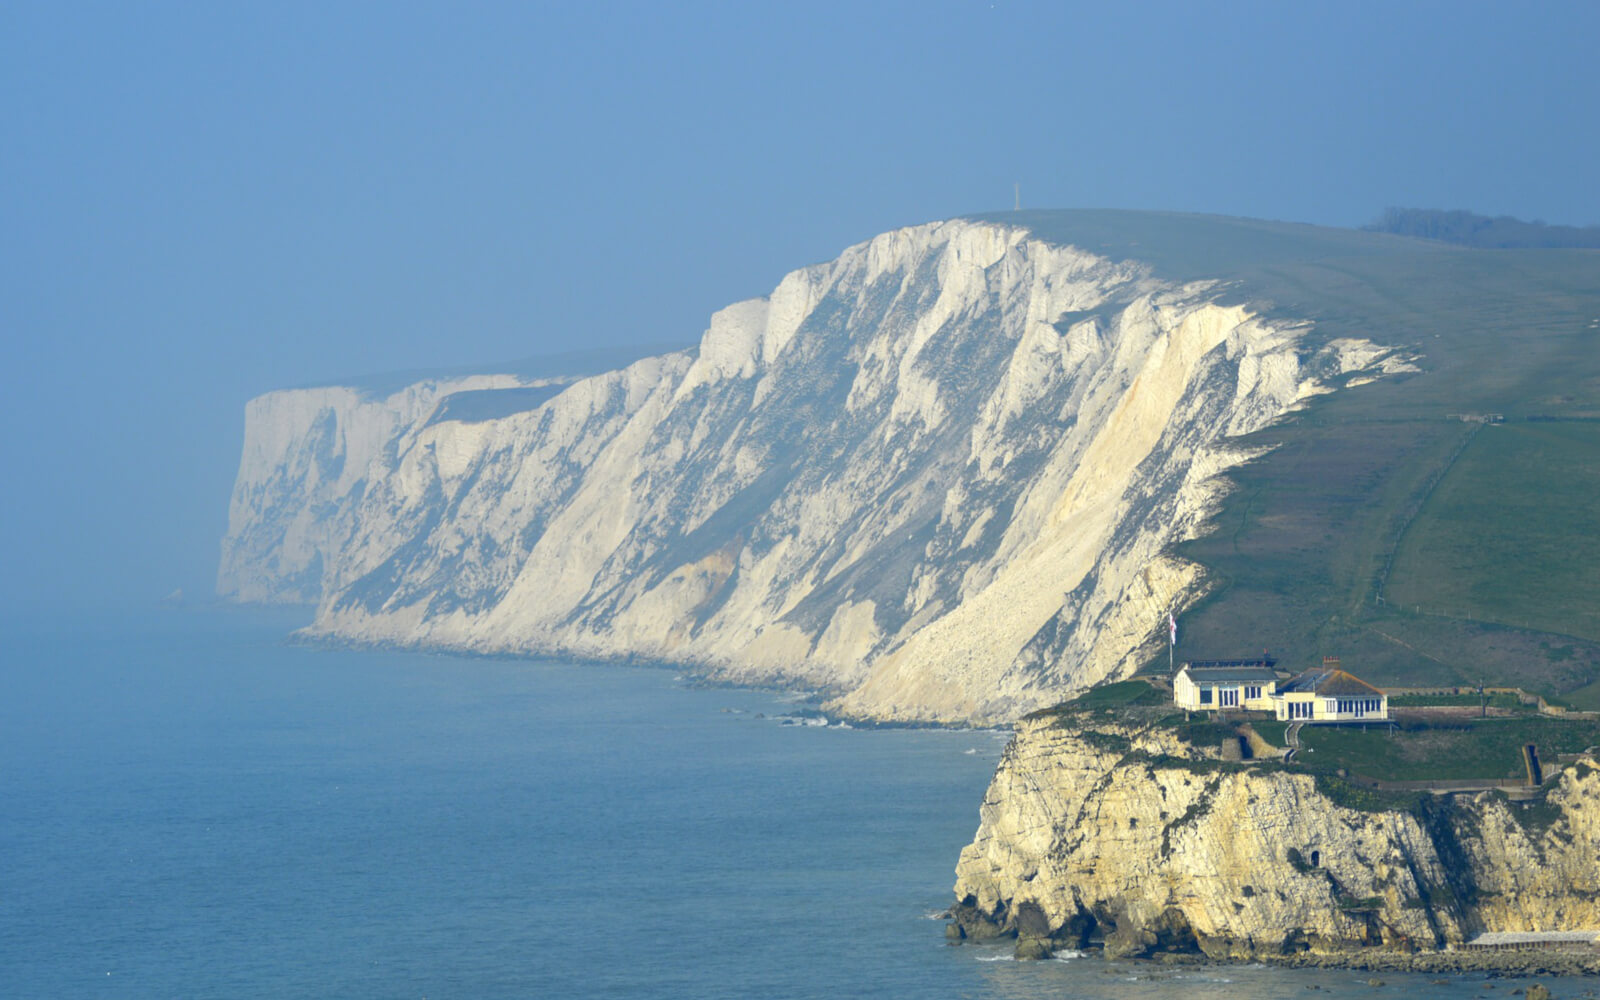 Self Catering Holidays In The Isle Of Wight - Save up to 60%